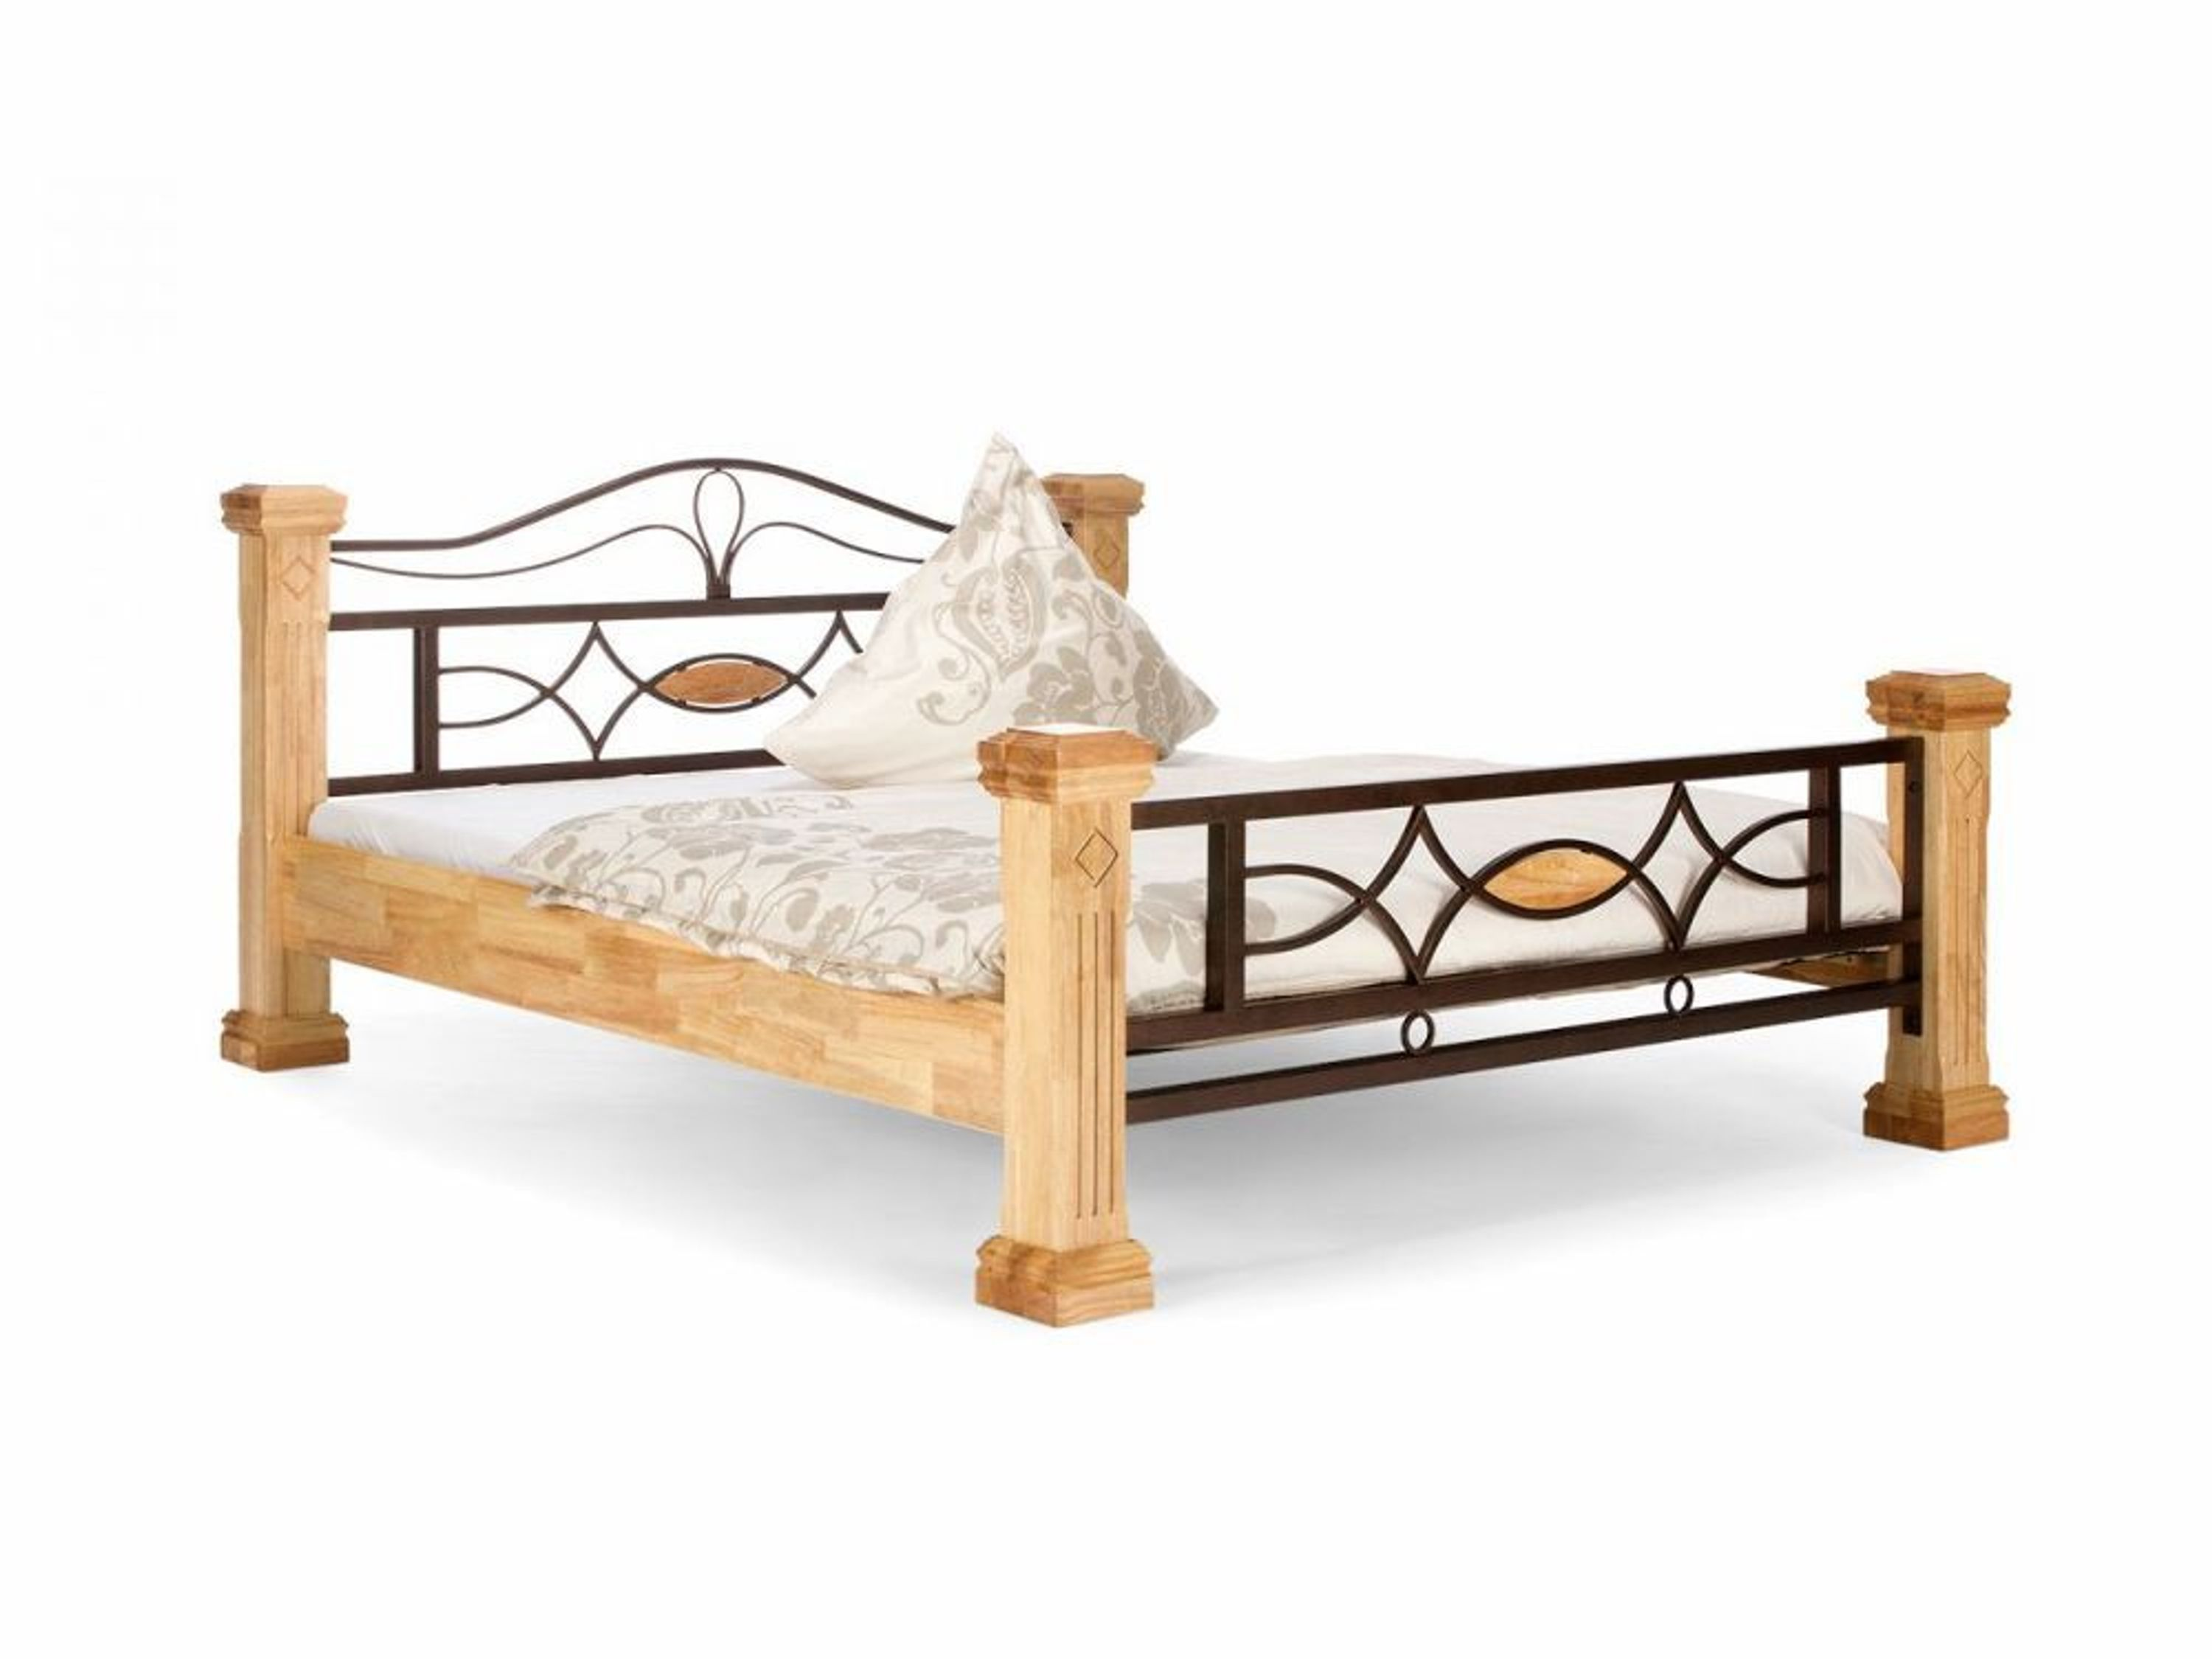 ehebett natur 200x200 holz doppelbett m bel bett neu byzanz kaufen bei. Black Bedroom Furniture Sets. Home Design Ideas